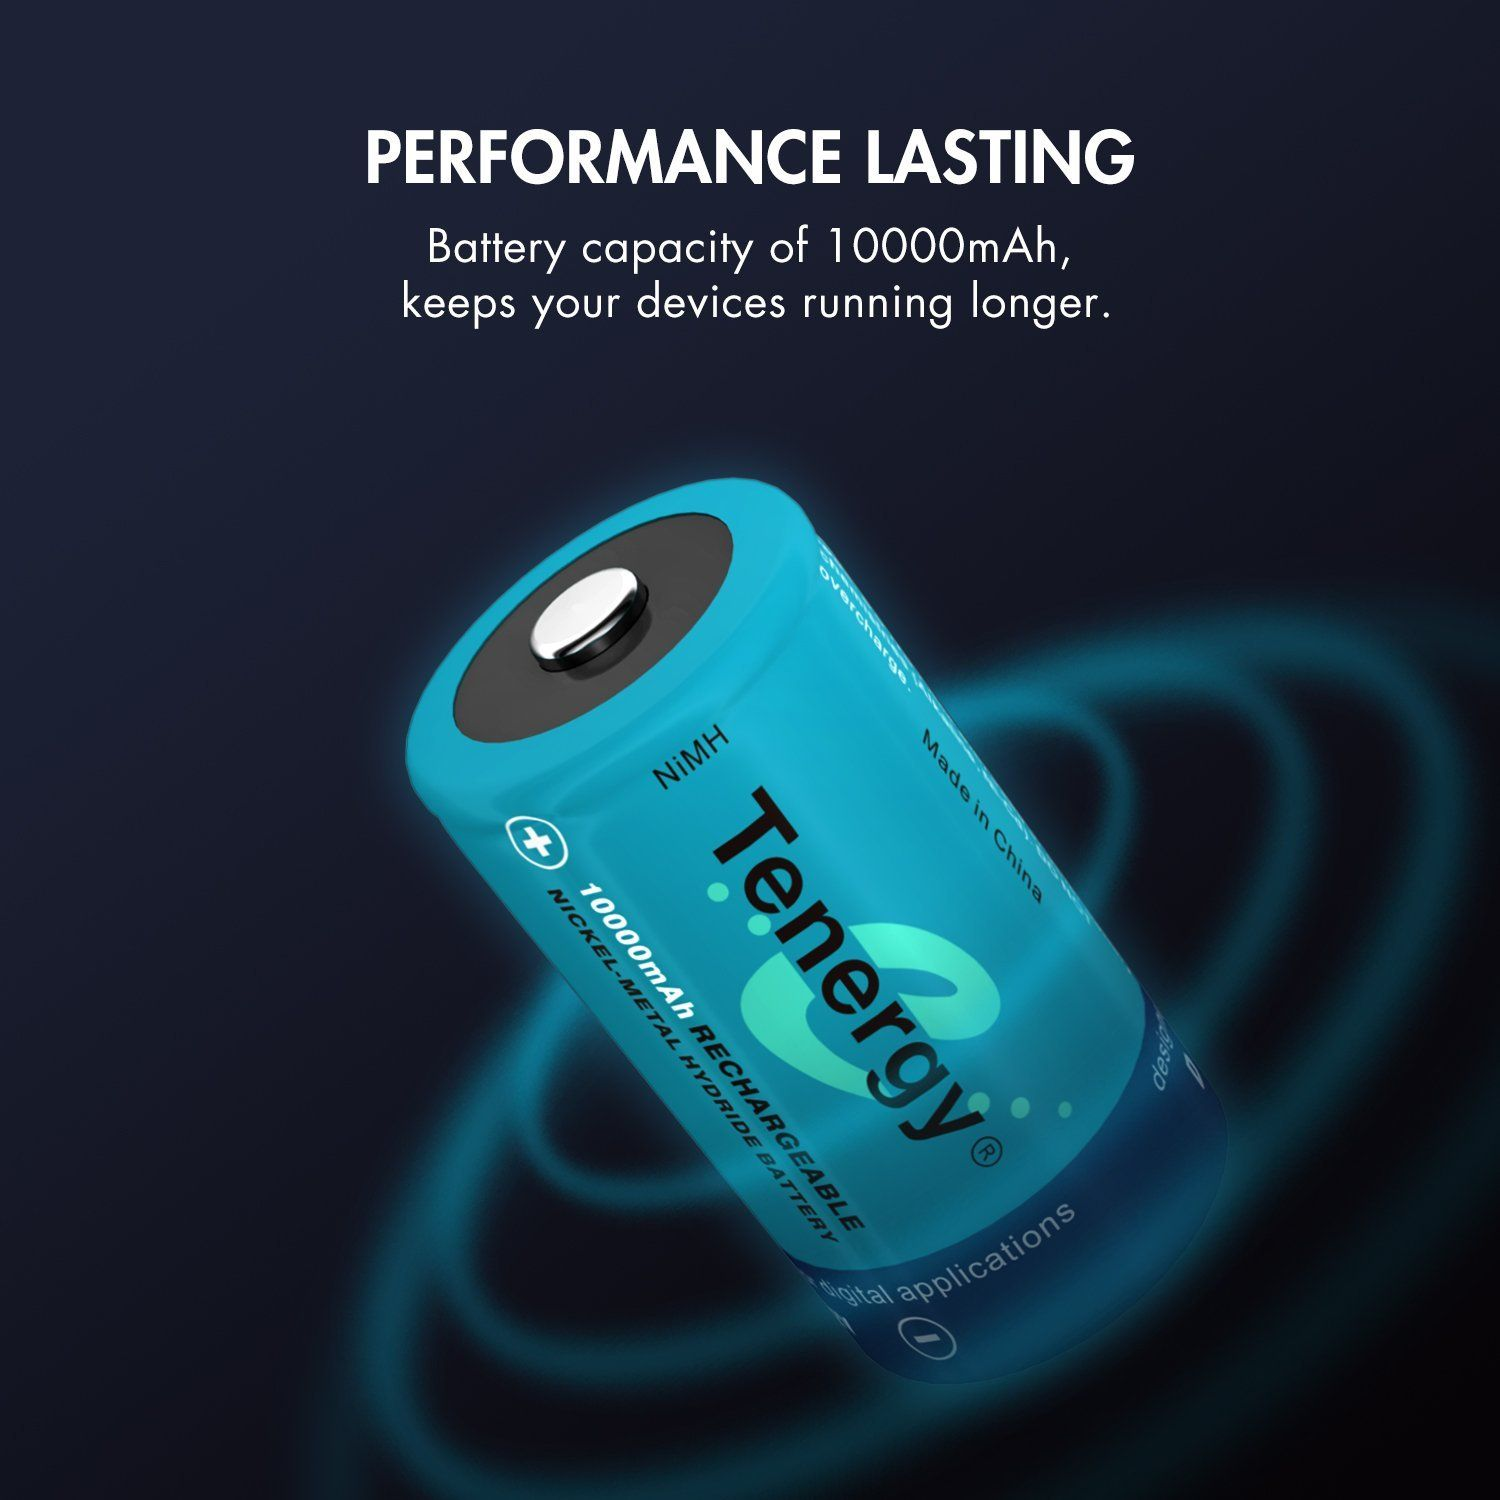 Tenergy 10000mAh NiMH 8 Pack D Batteries 34.49! (With